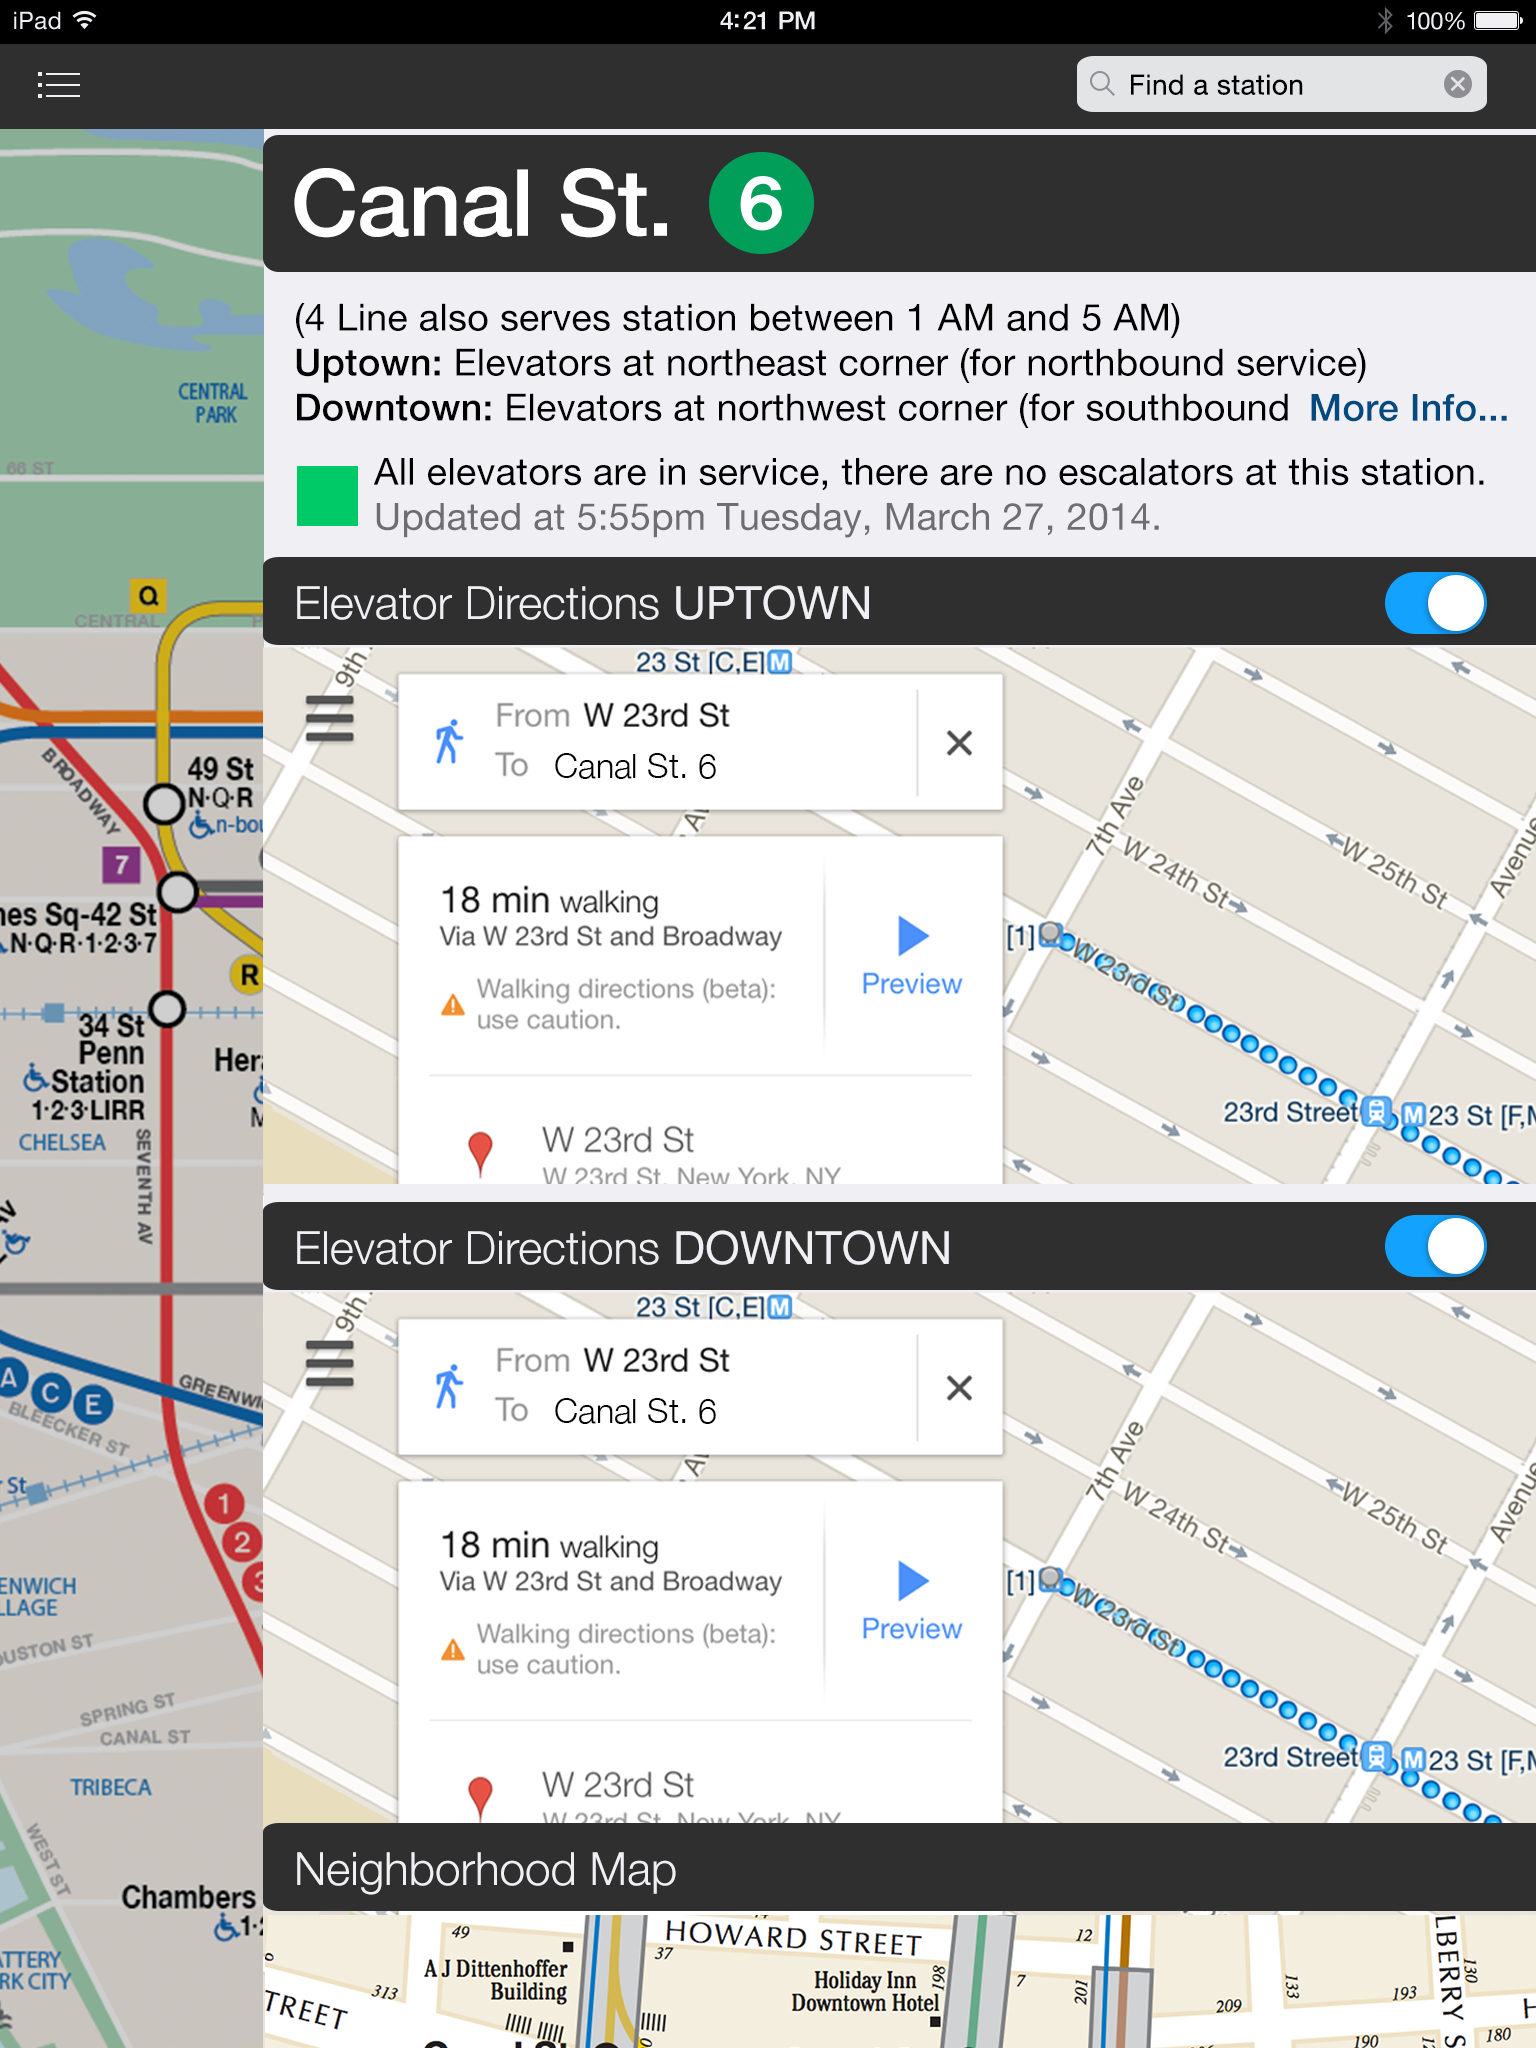 CANALSTstationinfoDIRECTIONS_ONboth_CONDENSED.png